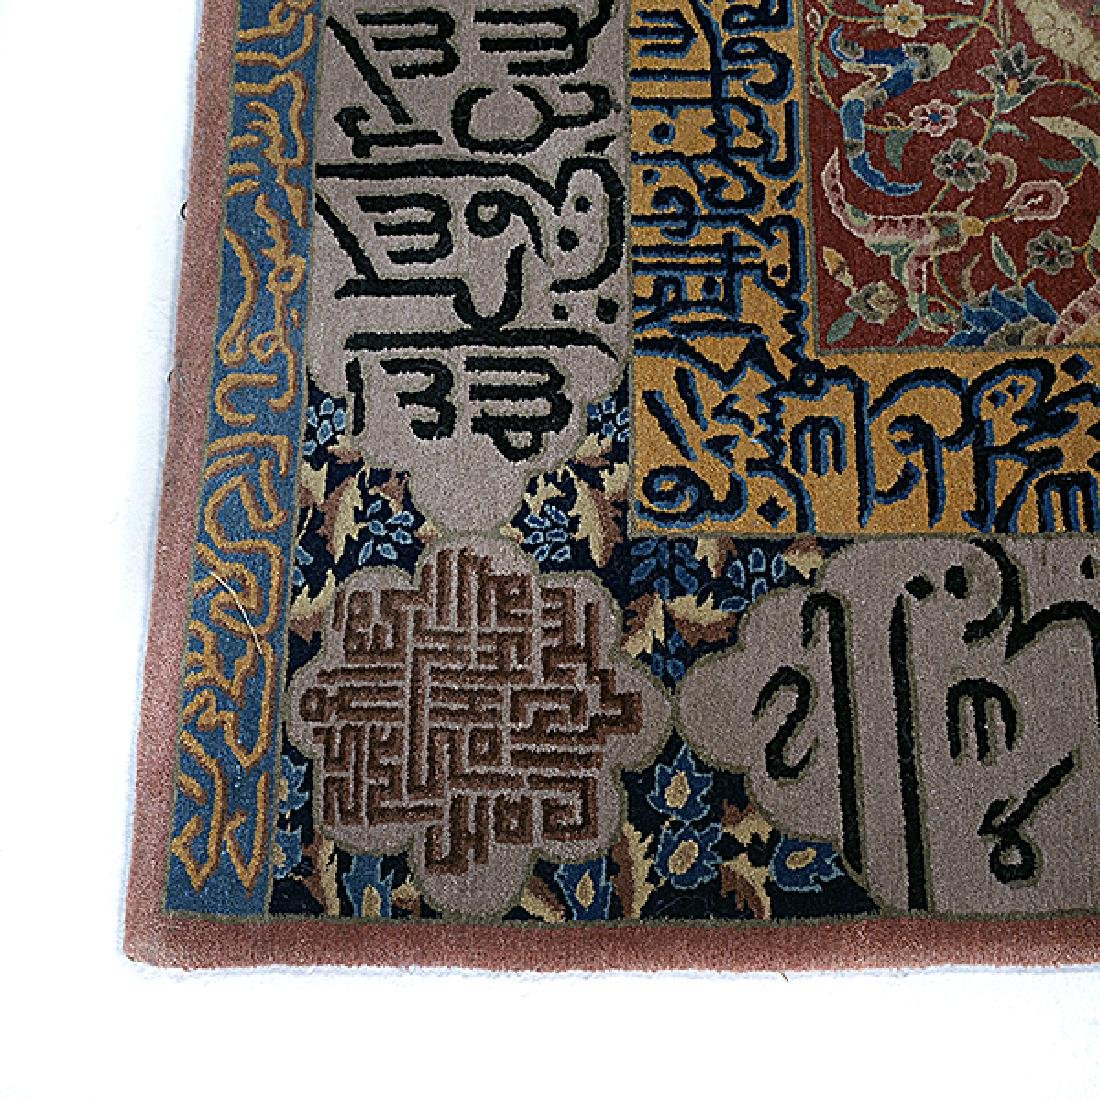 Islamic Figural Carpet Tapestry with Calligraphy: 5 - 2